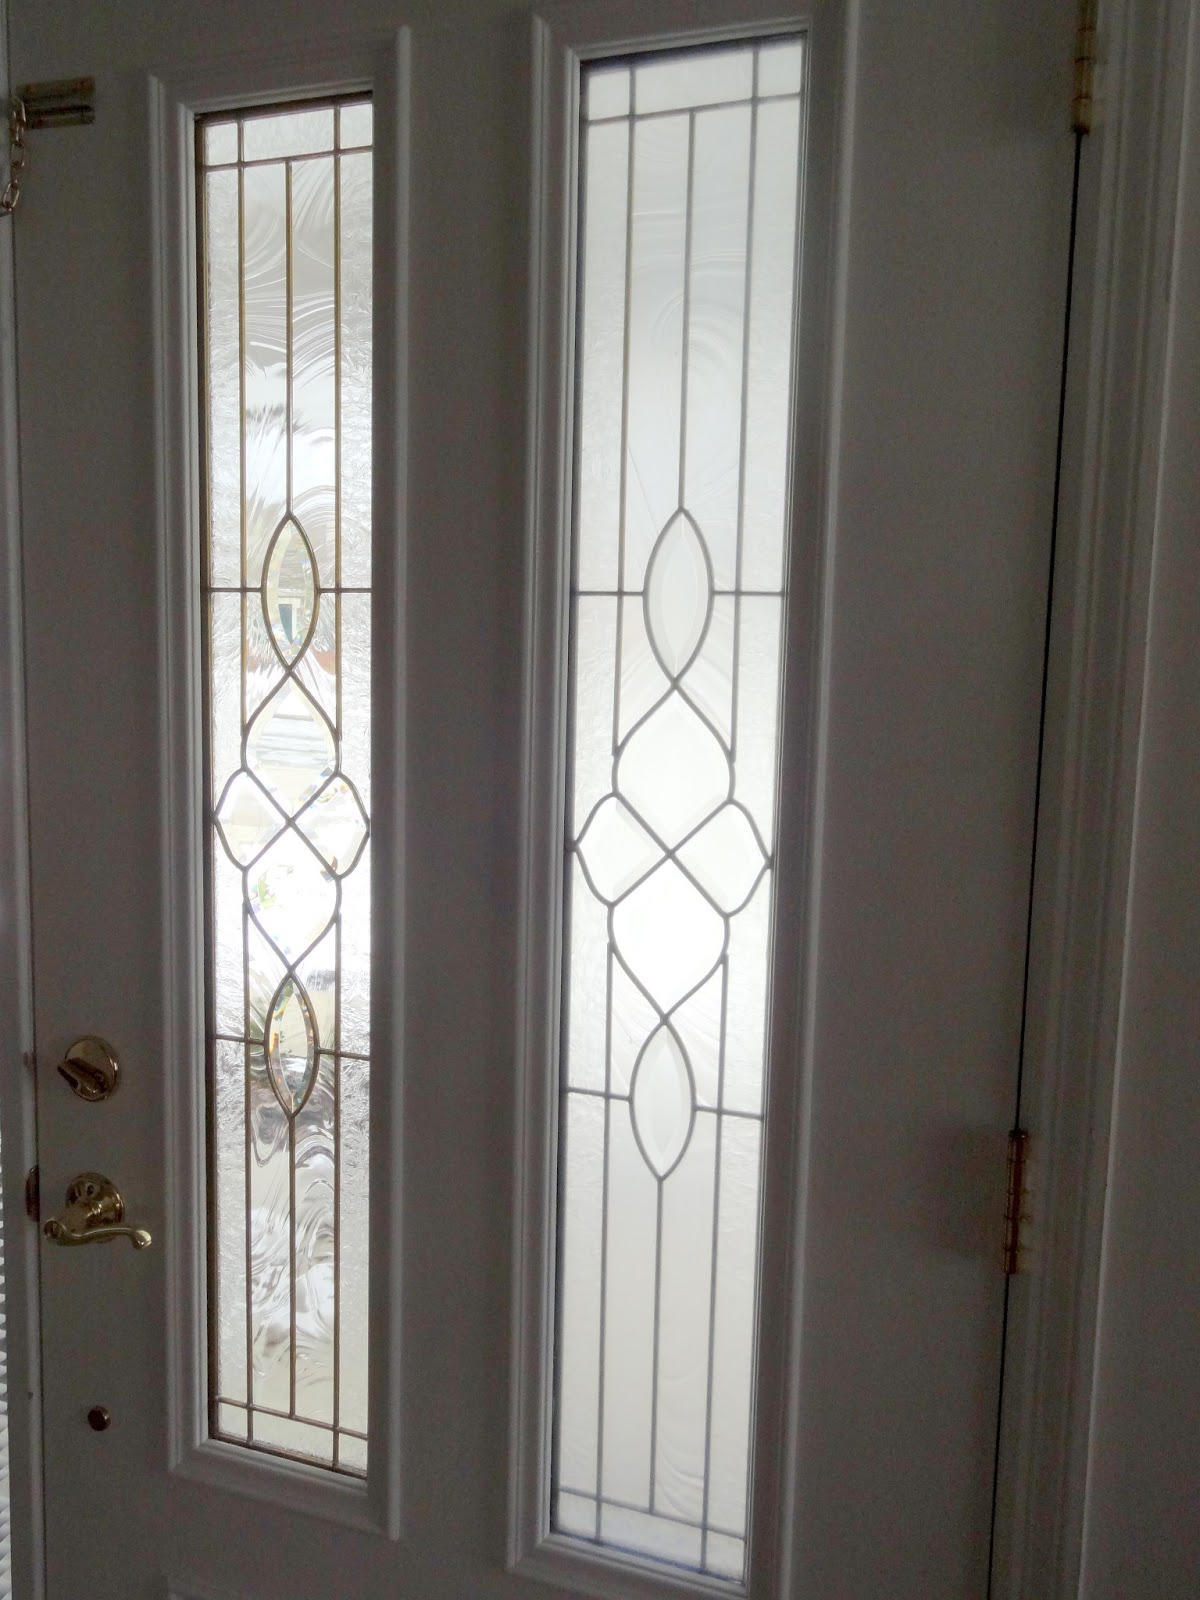 Just because sidelight window and front door privacy for Glass privacy window